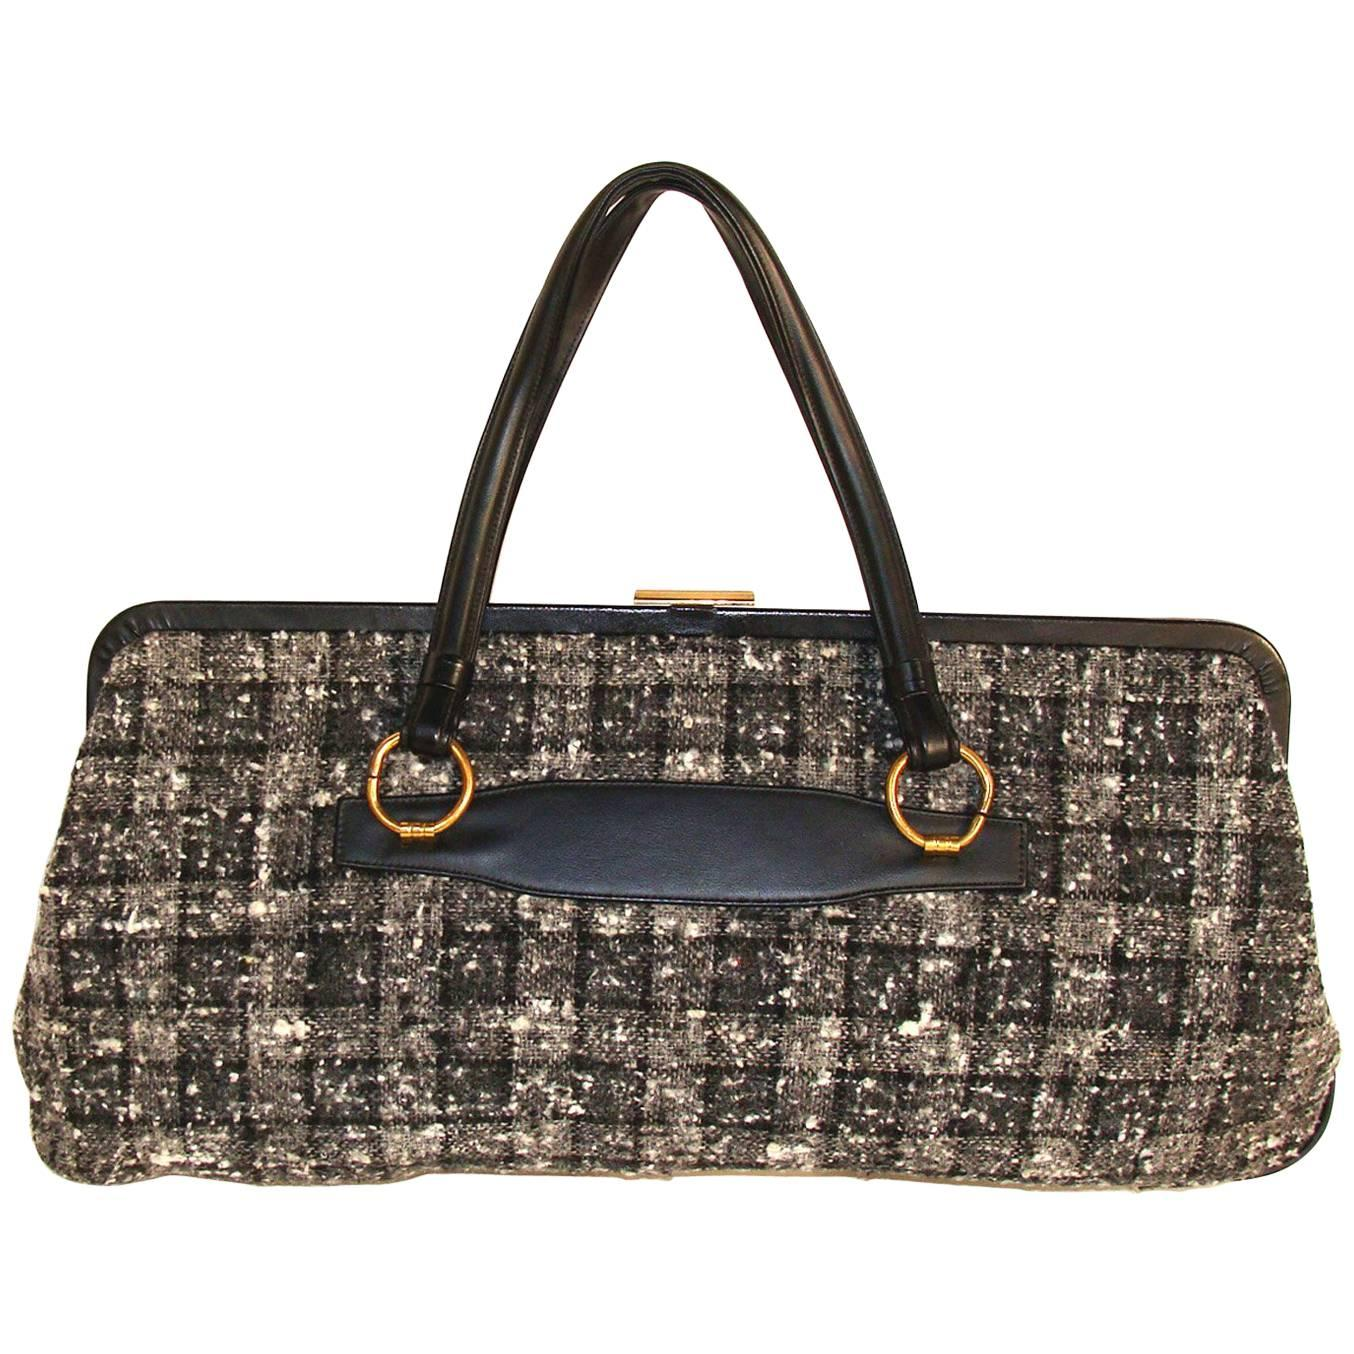 1stdibs Rare Oversized Double Handle Tweed Plaid Bag In Black And Gray Fall 2eYqotWQ